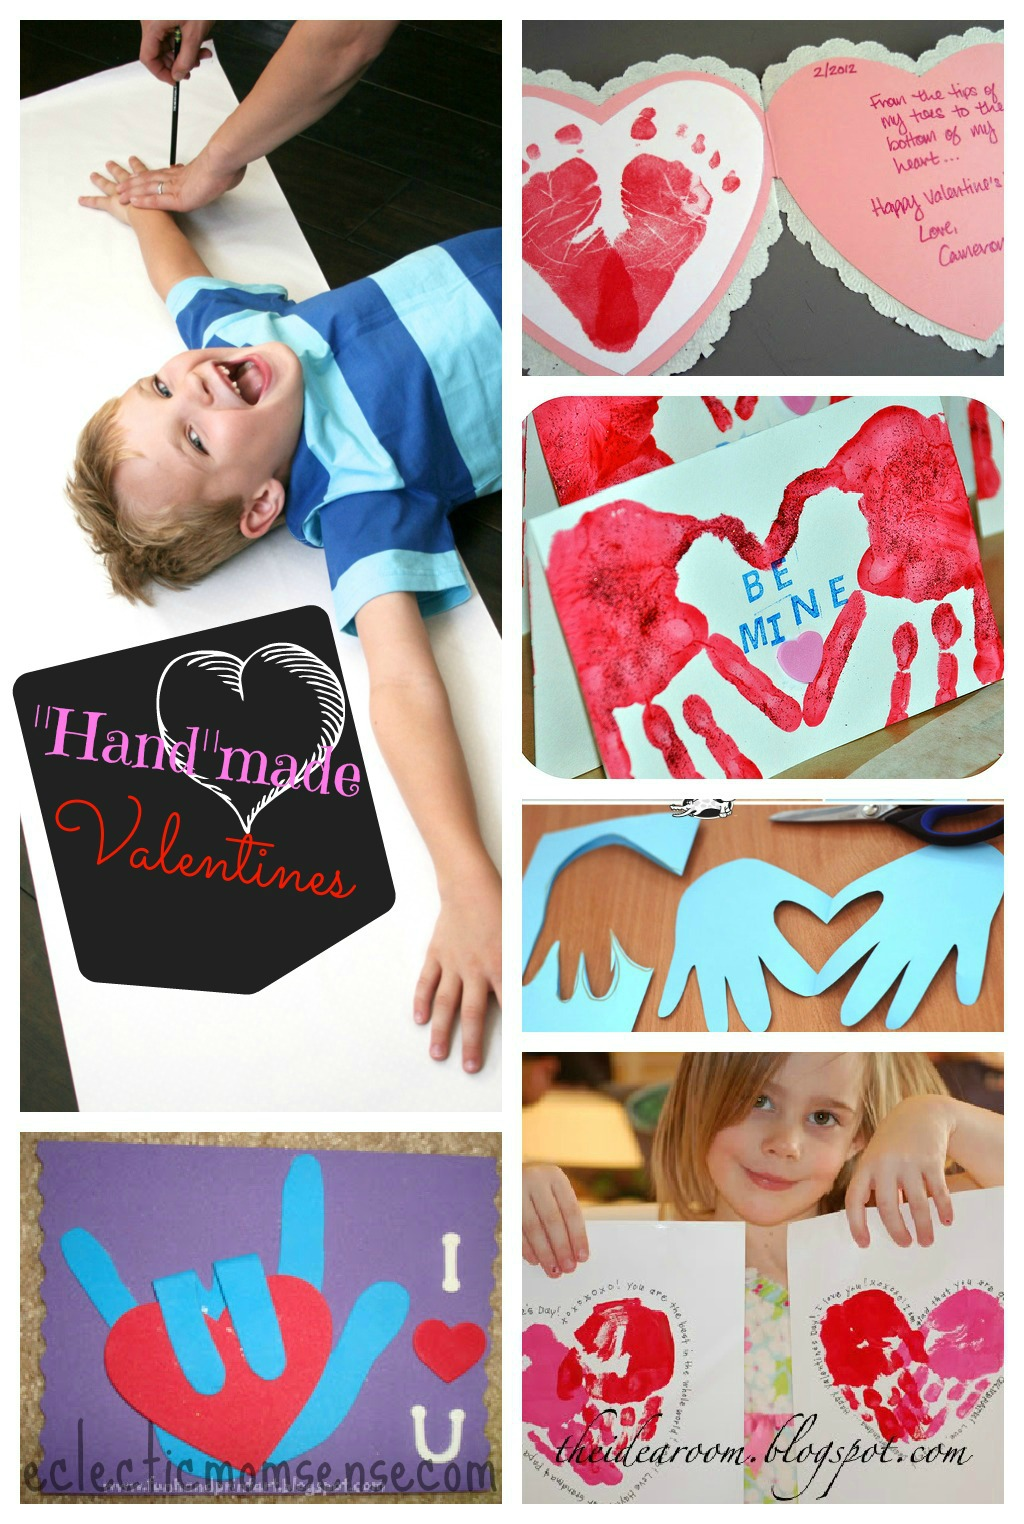 Handmade Valentines Ideas via @eclecticmommy - eclecticmomsense.com